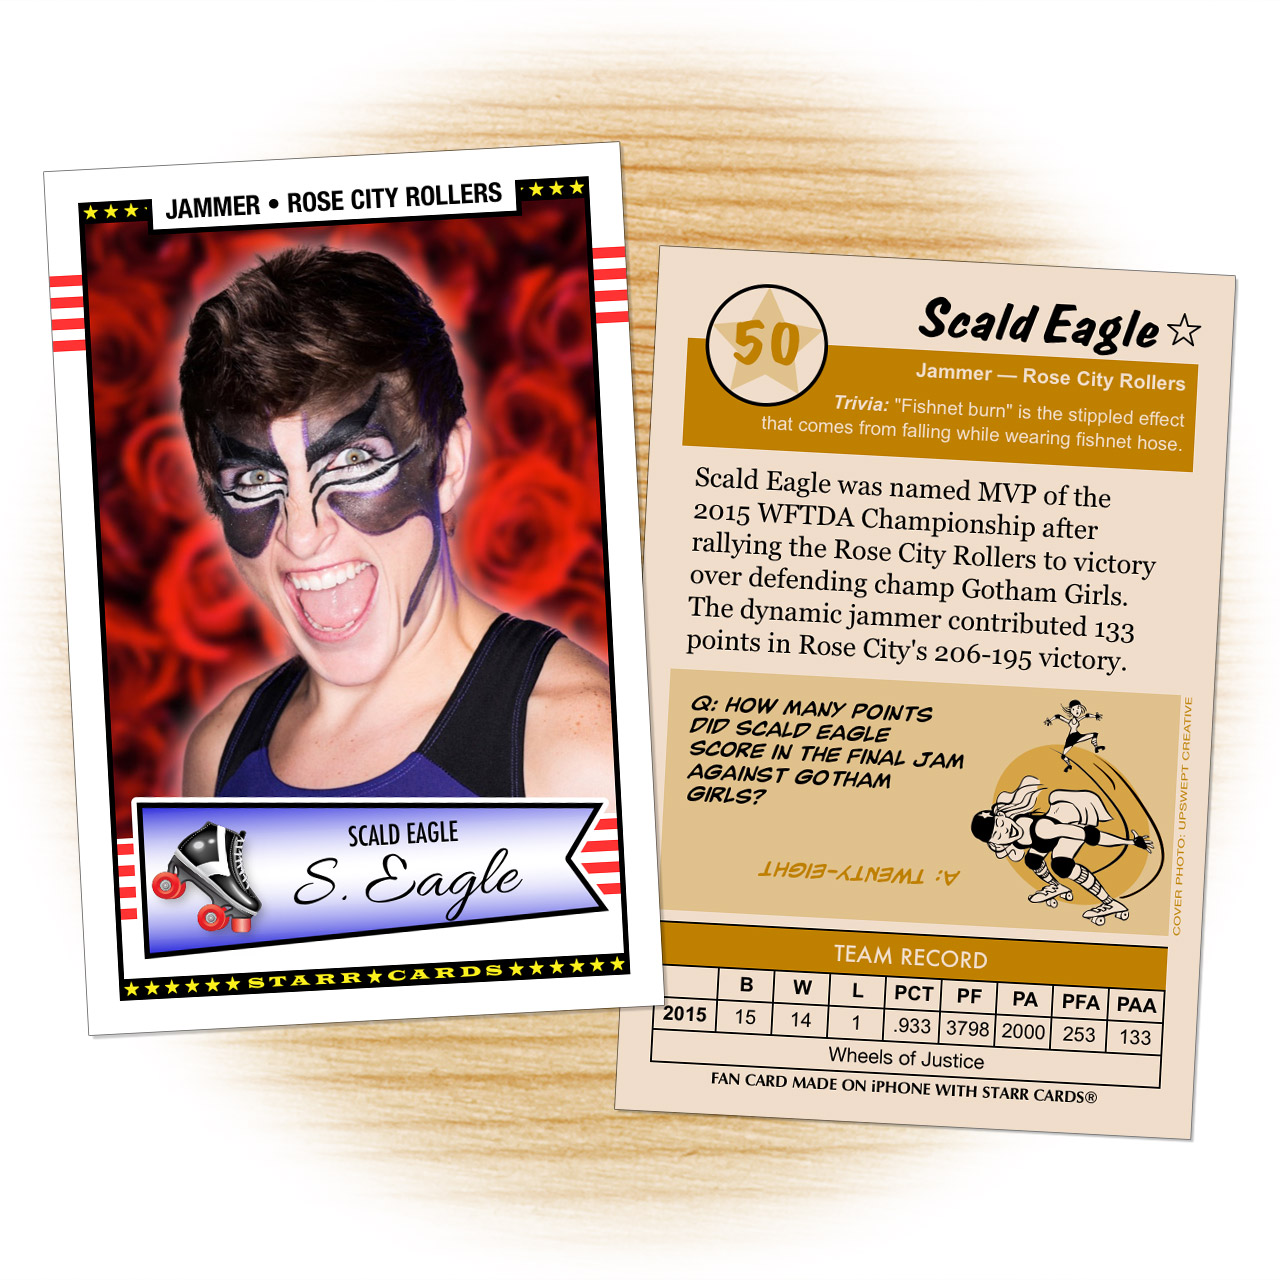 Fan card of Rose City Rollers jammer Scald Eagle